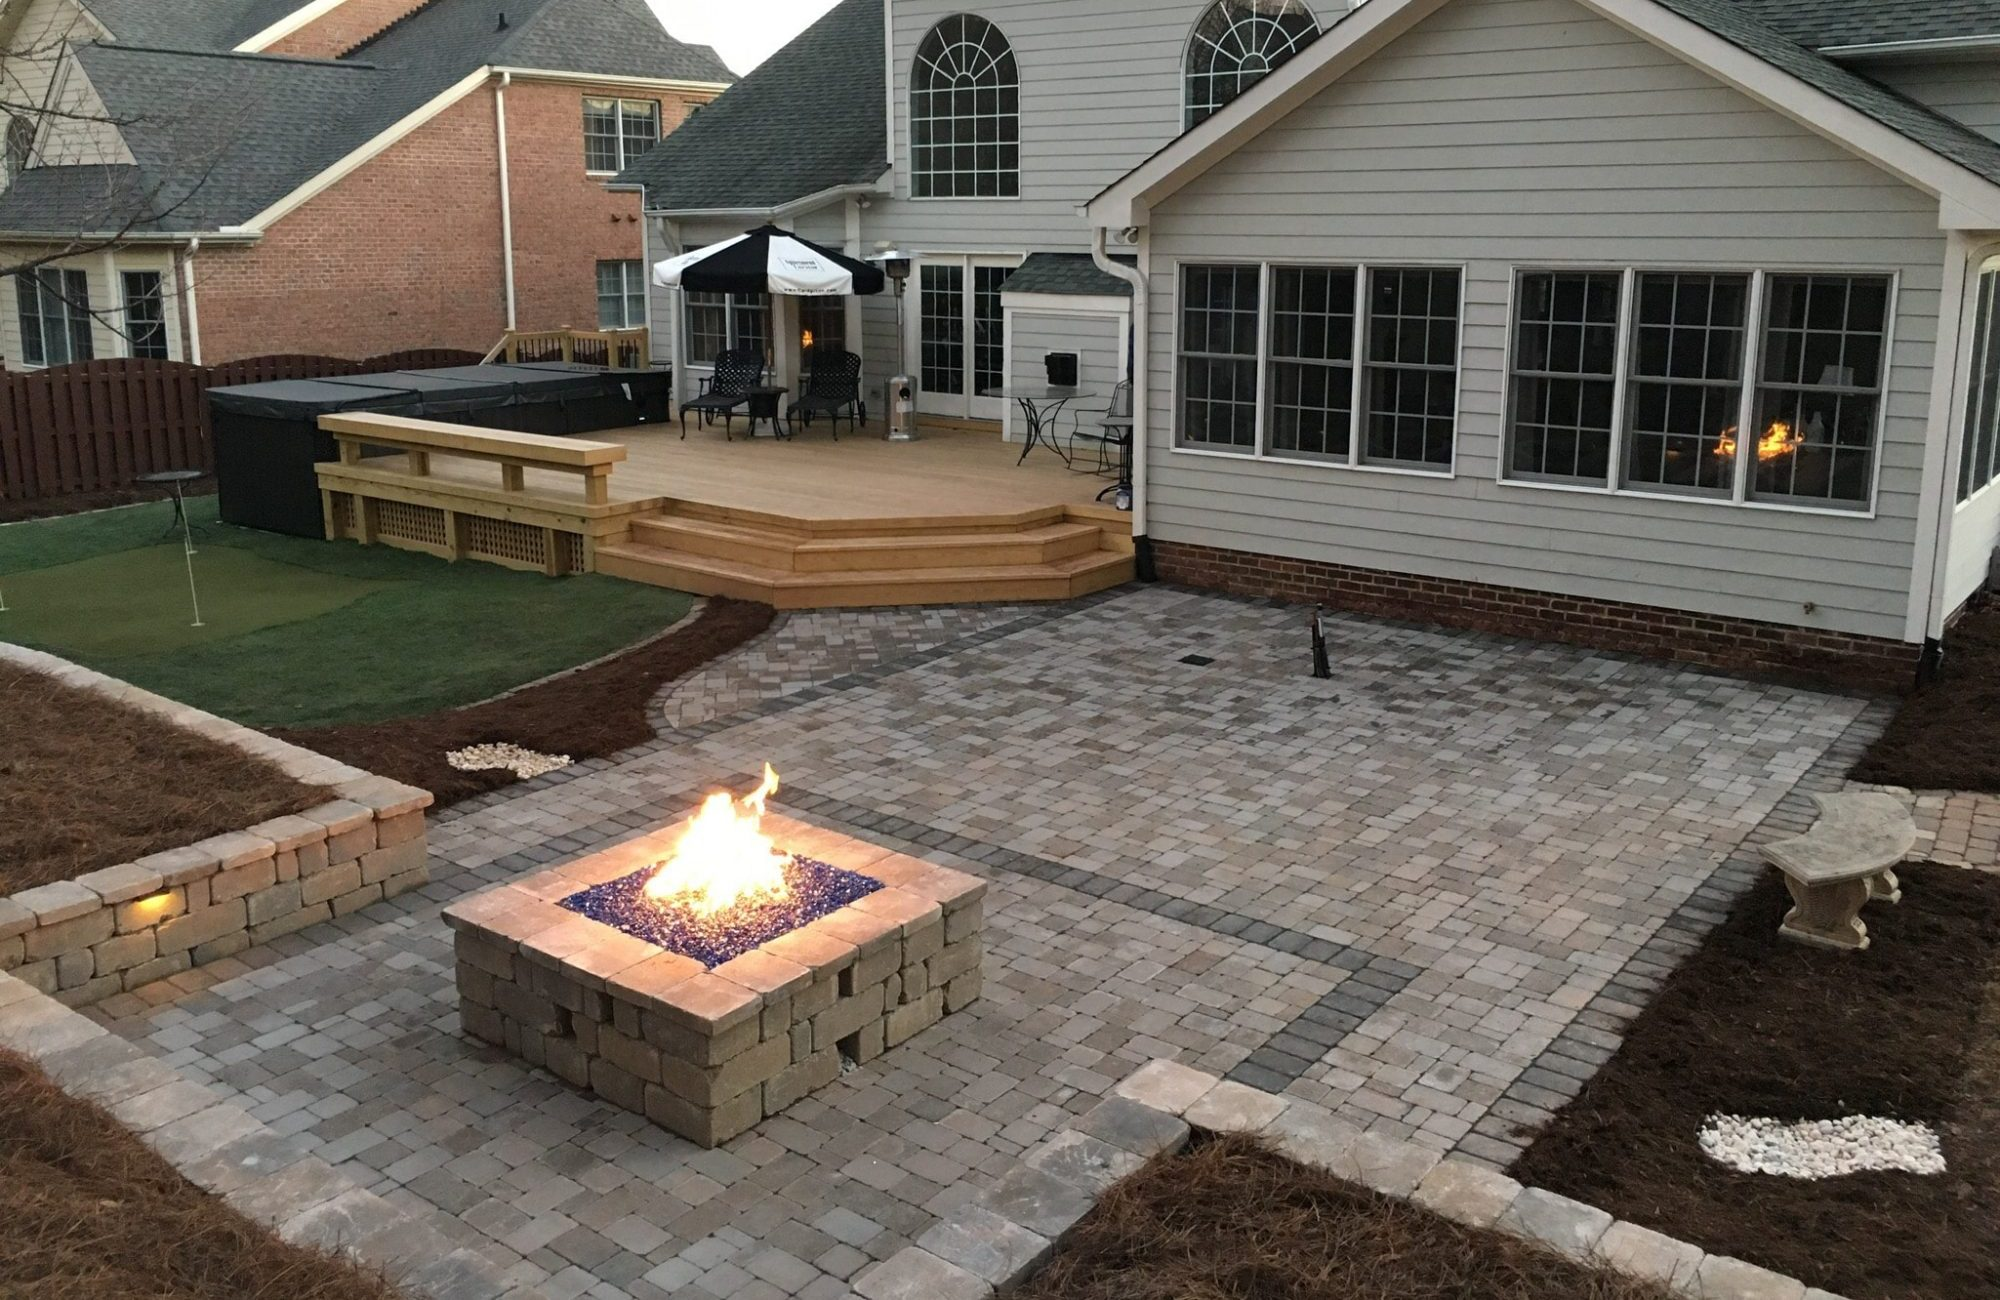 cary landscaping services design u0026 build your dream outdoor